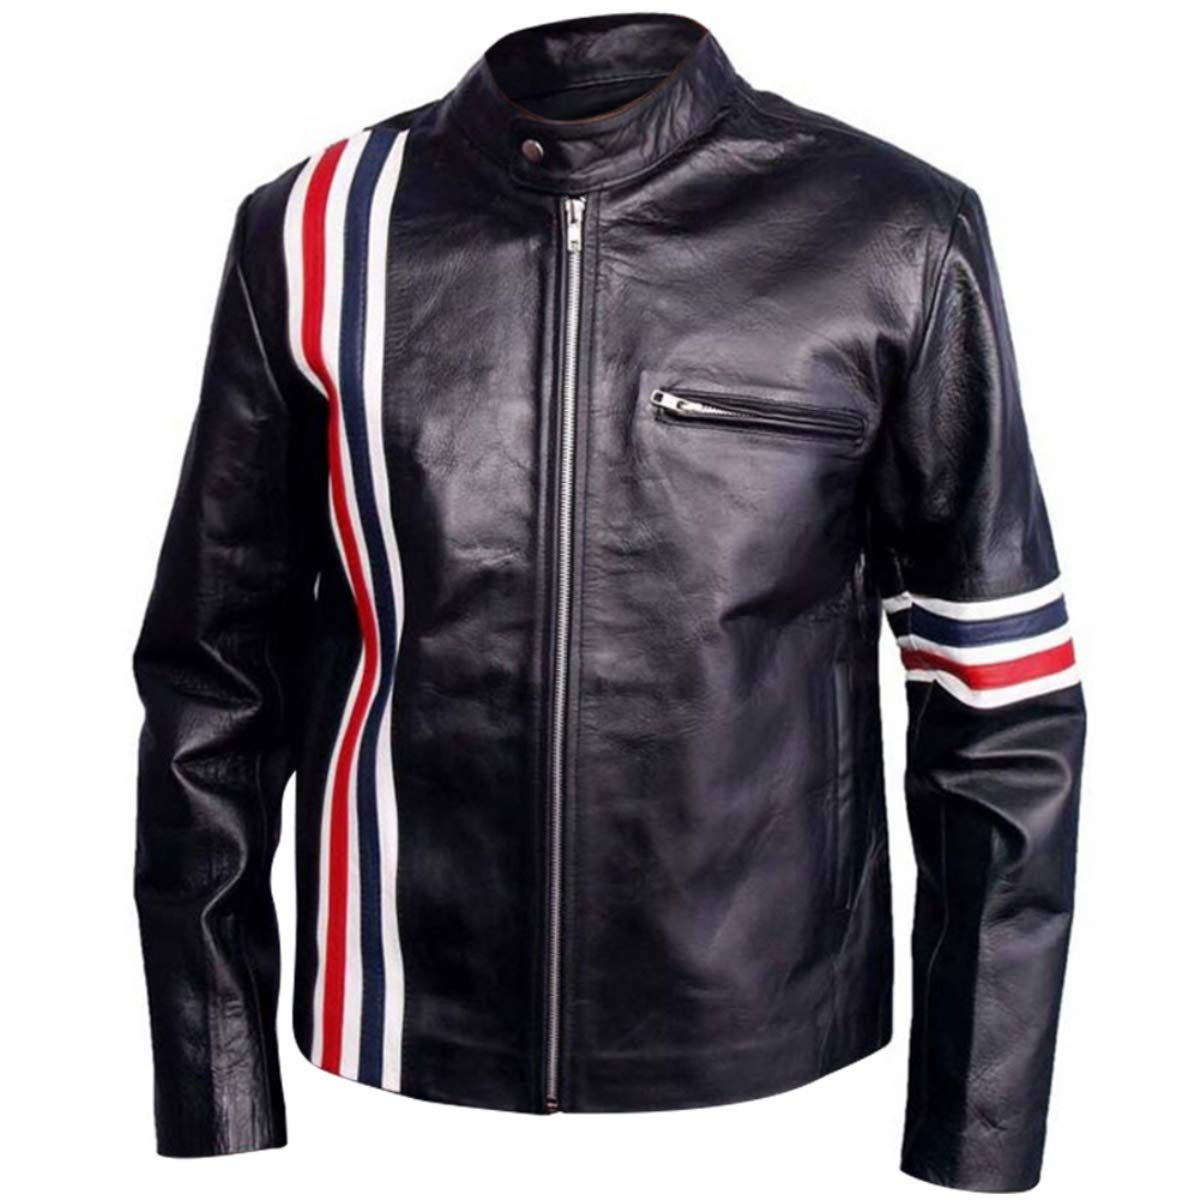 Easy Rider Peter Fonda American Star Biker Black Leather Jacket With Usa Flag Leather Estate This Leather Jackets Online Leather Jacket Men S Coats And Jackets [ 1200 x 1200 Pixel ]